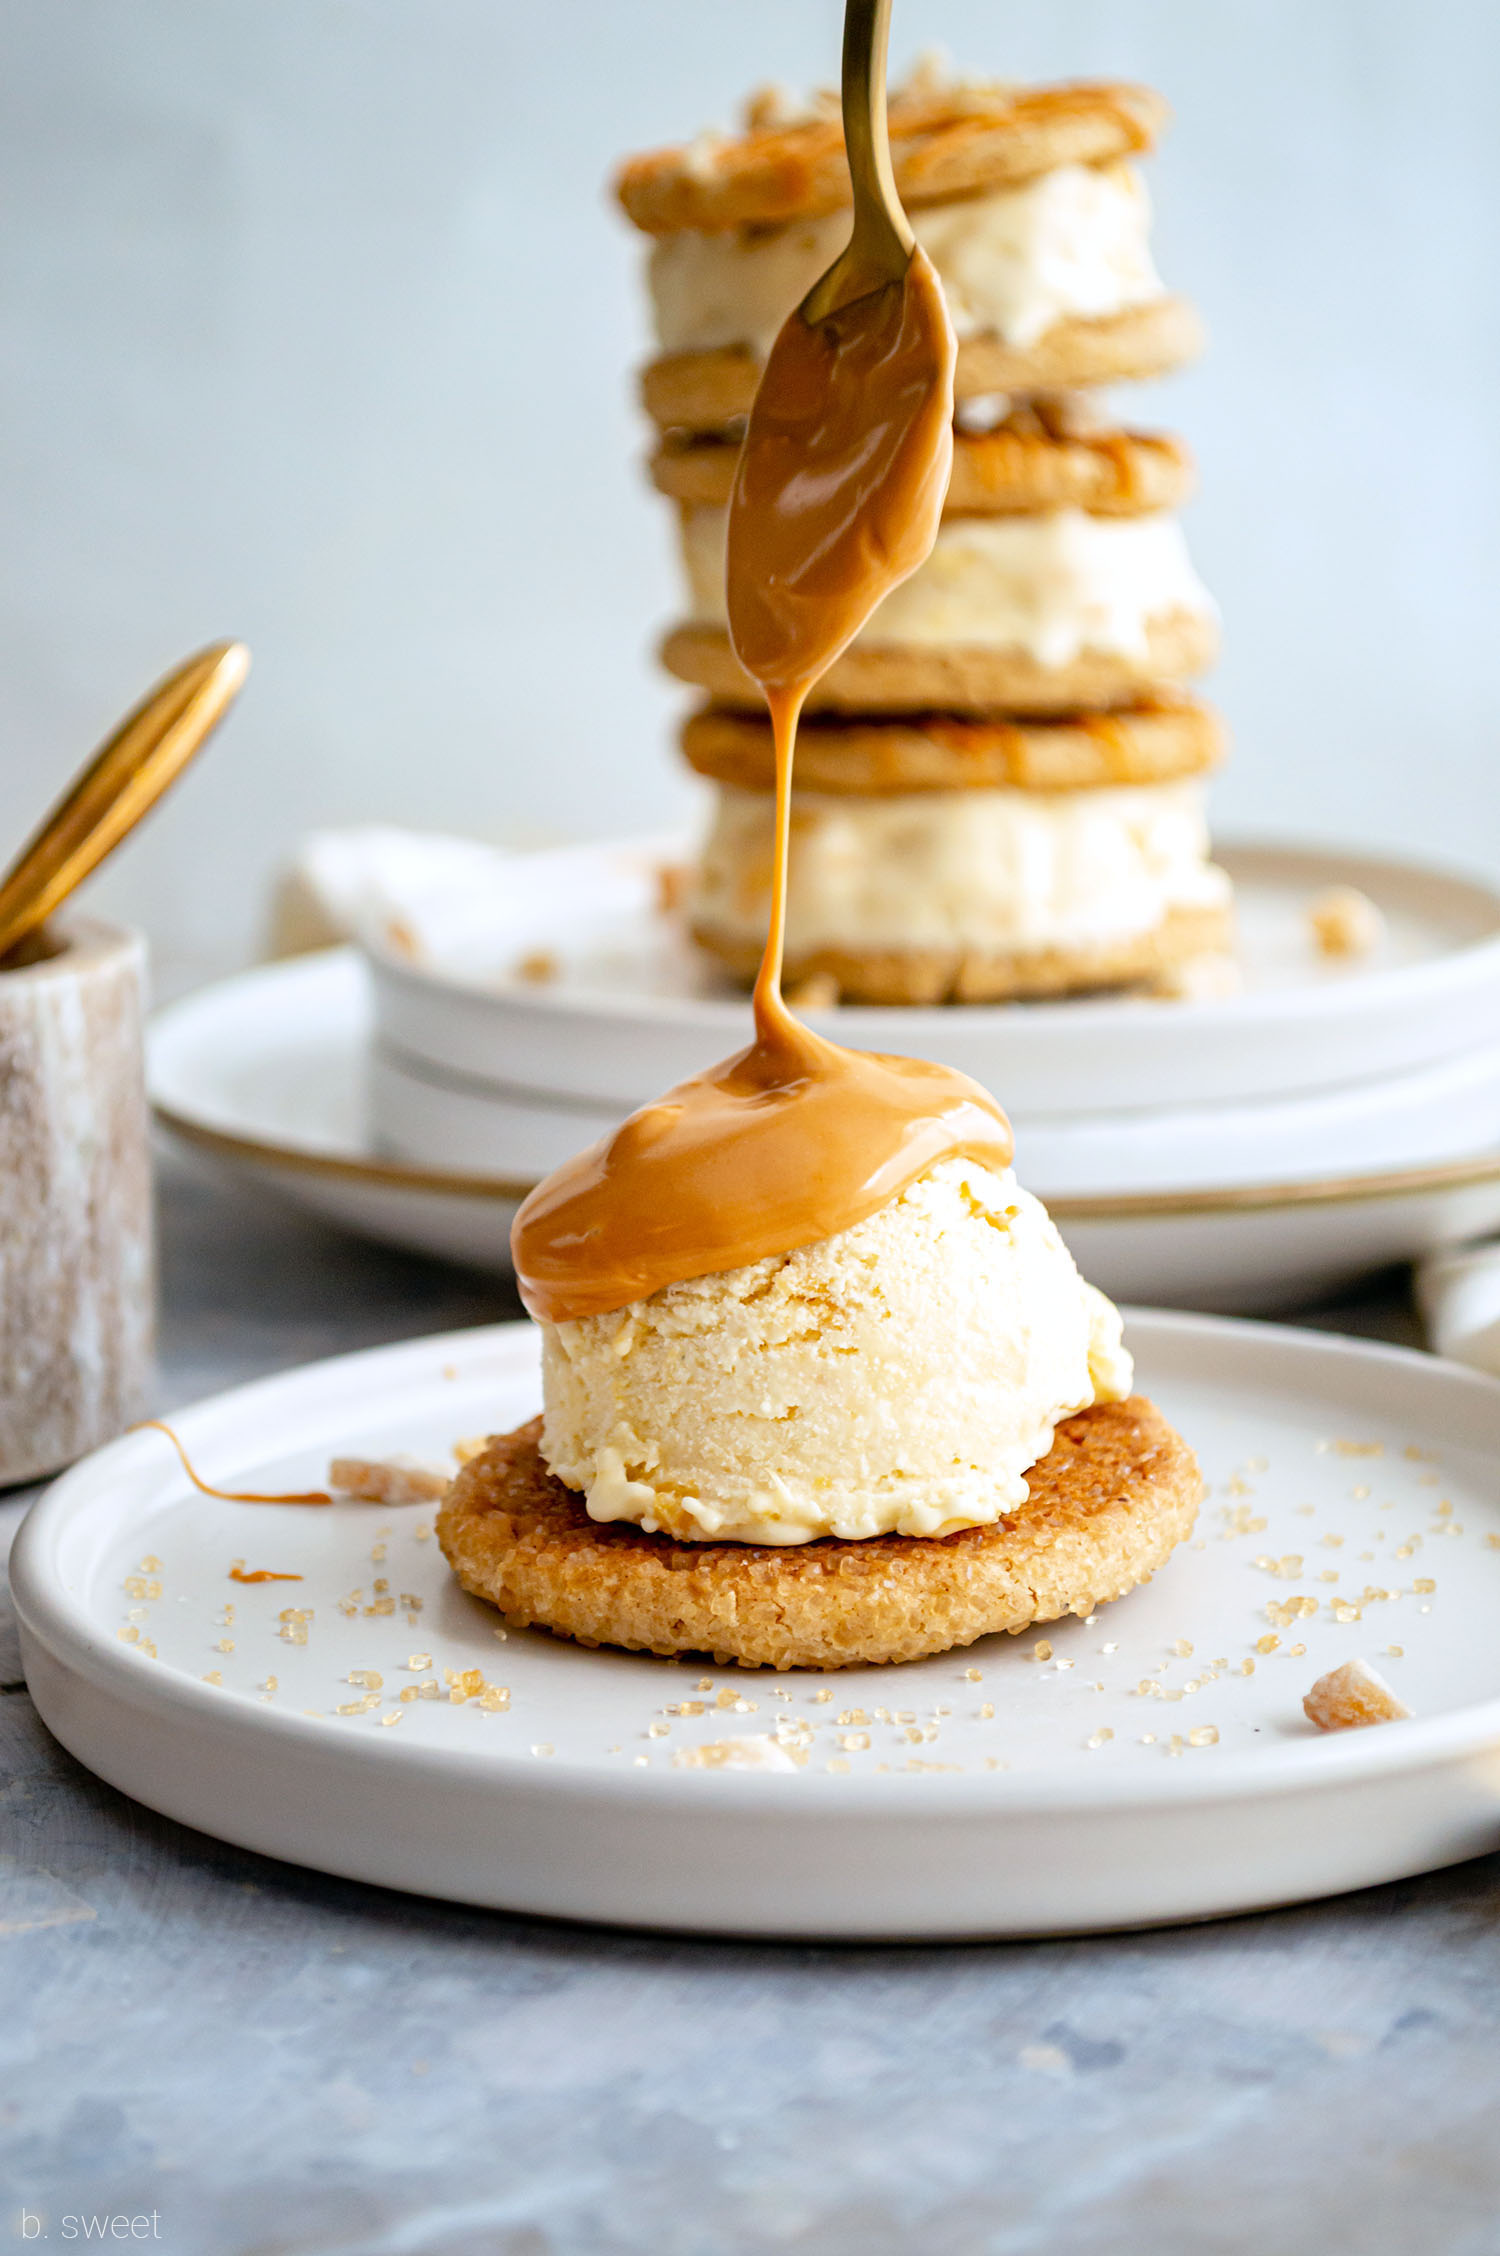 Peach Ice Cream Sandwiches with Ginger Brown Butter Cookies and Butterscotch Magic Shell - b. sweet